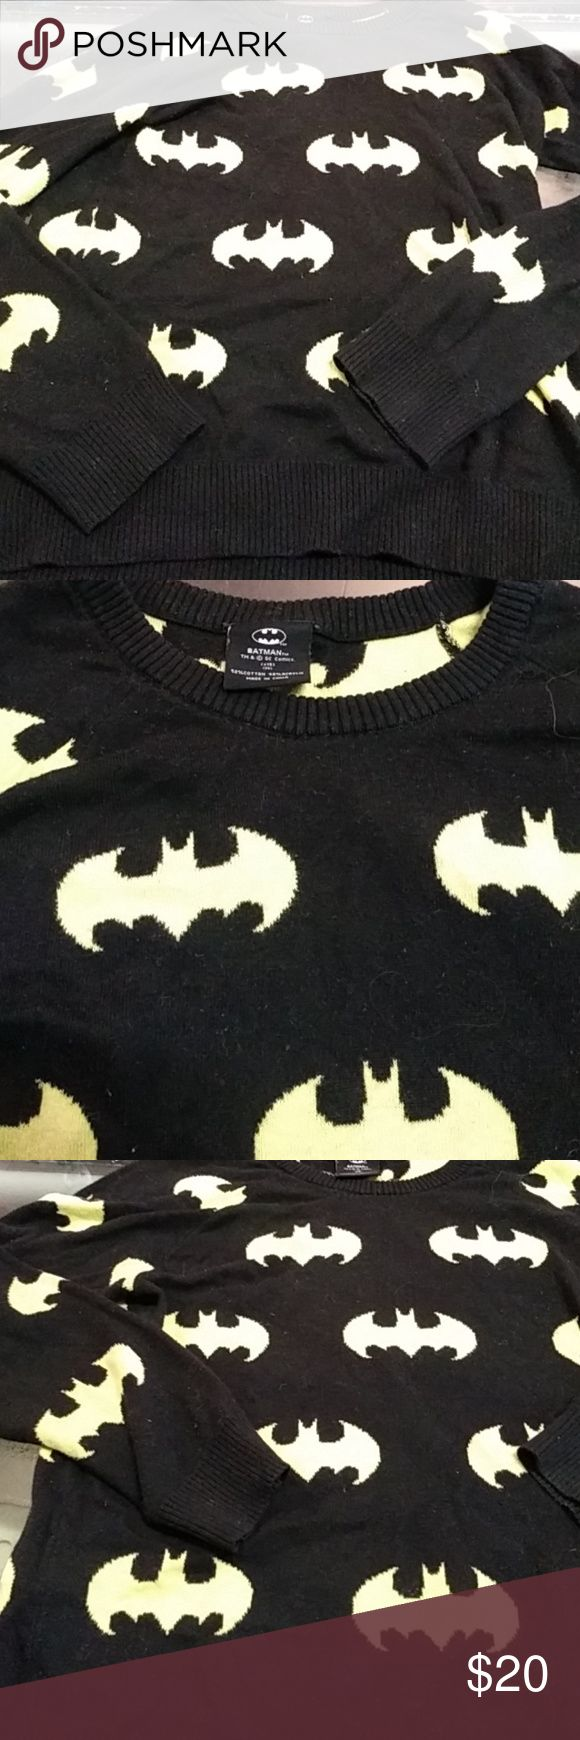 Batman sweater Black and yellow pullover sweater #unisex #batman #dc #comicbook #comics #cosplay Hot Topic Sweaters Crew & Scoop Necks